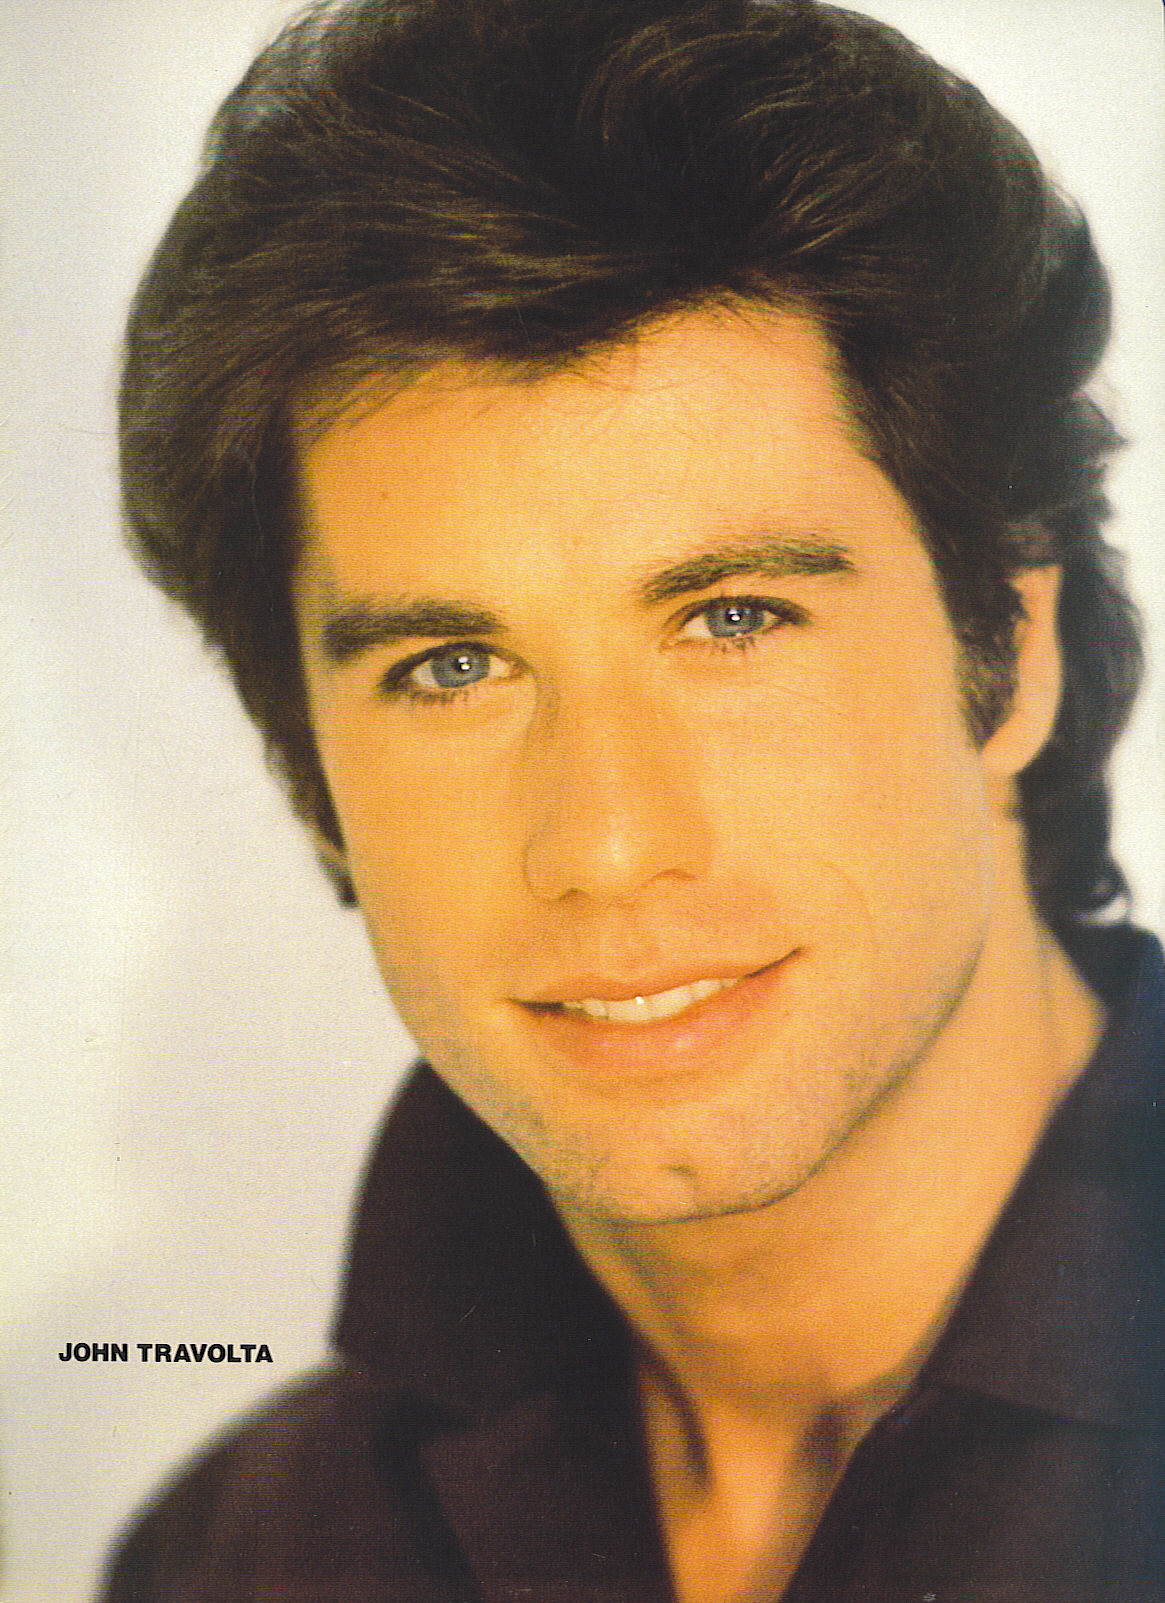 john travolta - john travolta photo (21332482) - fanpop